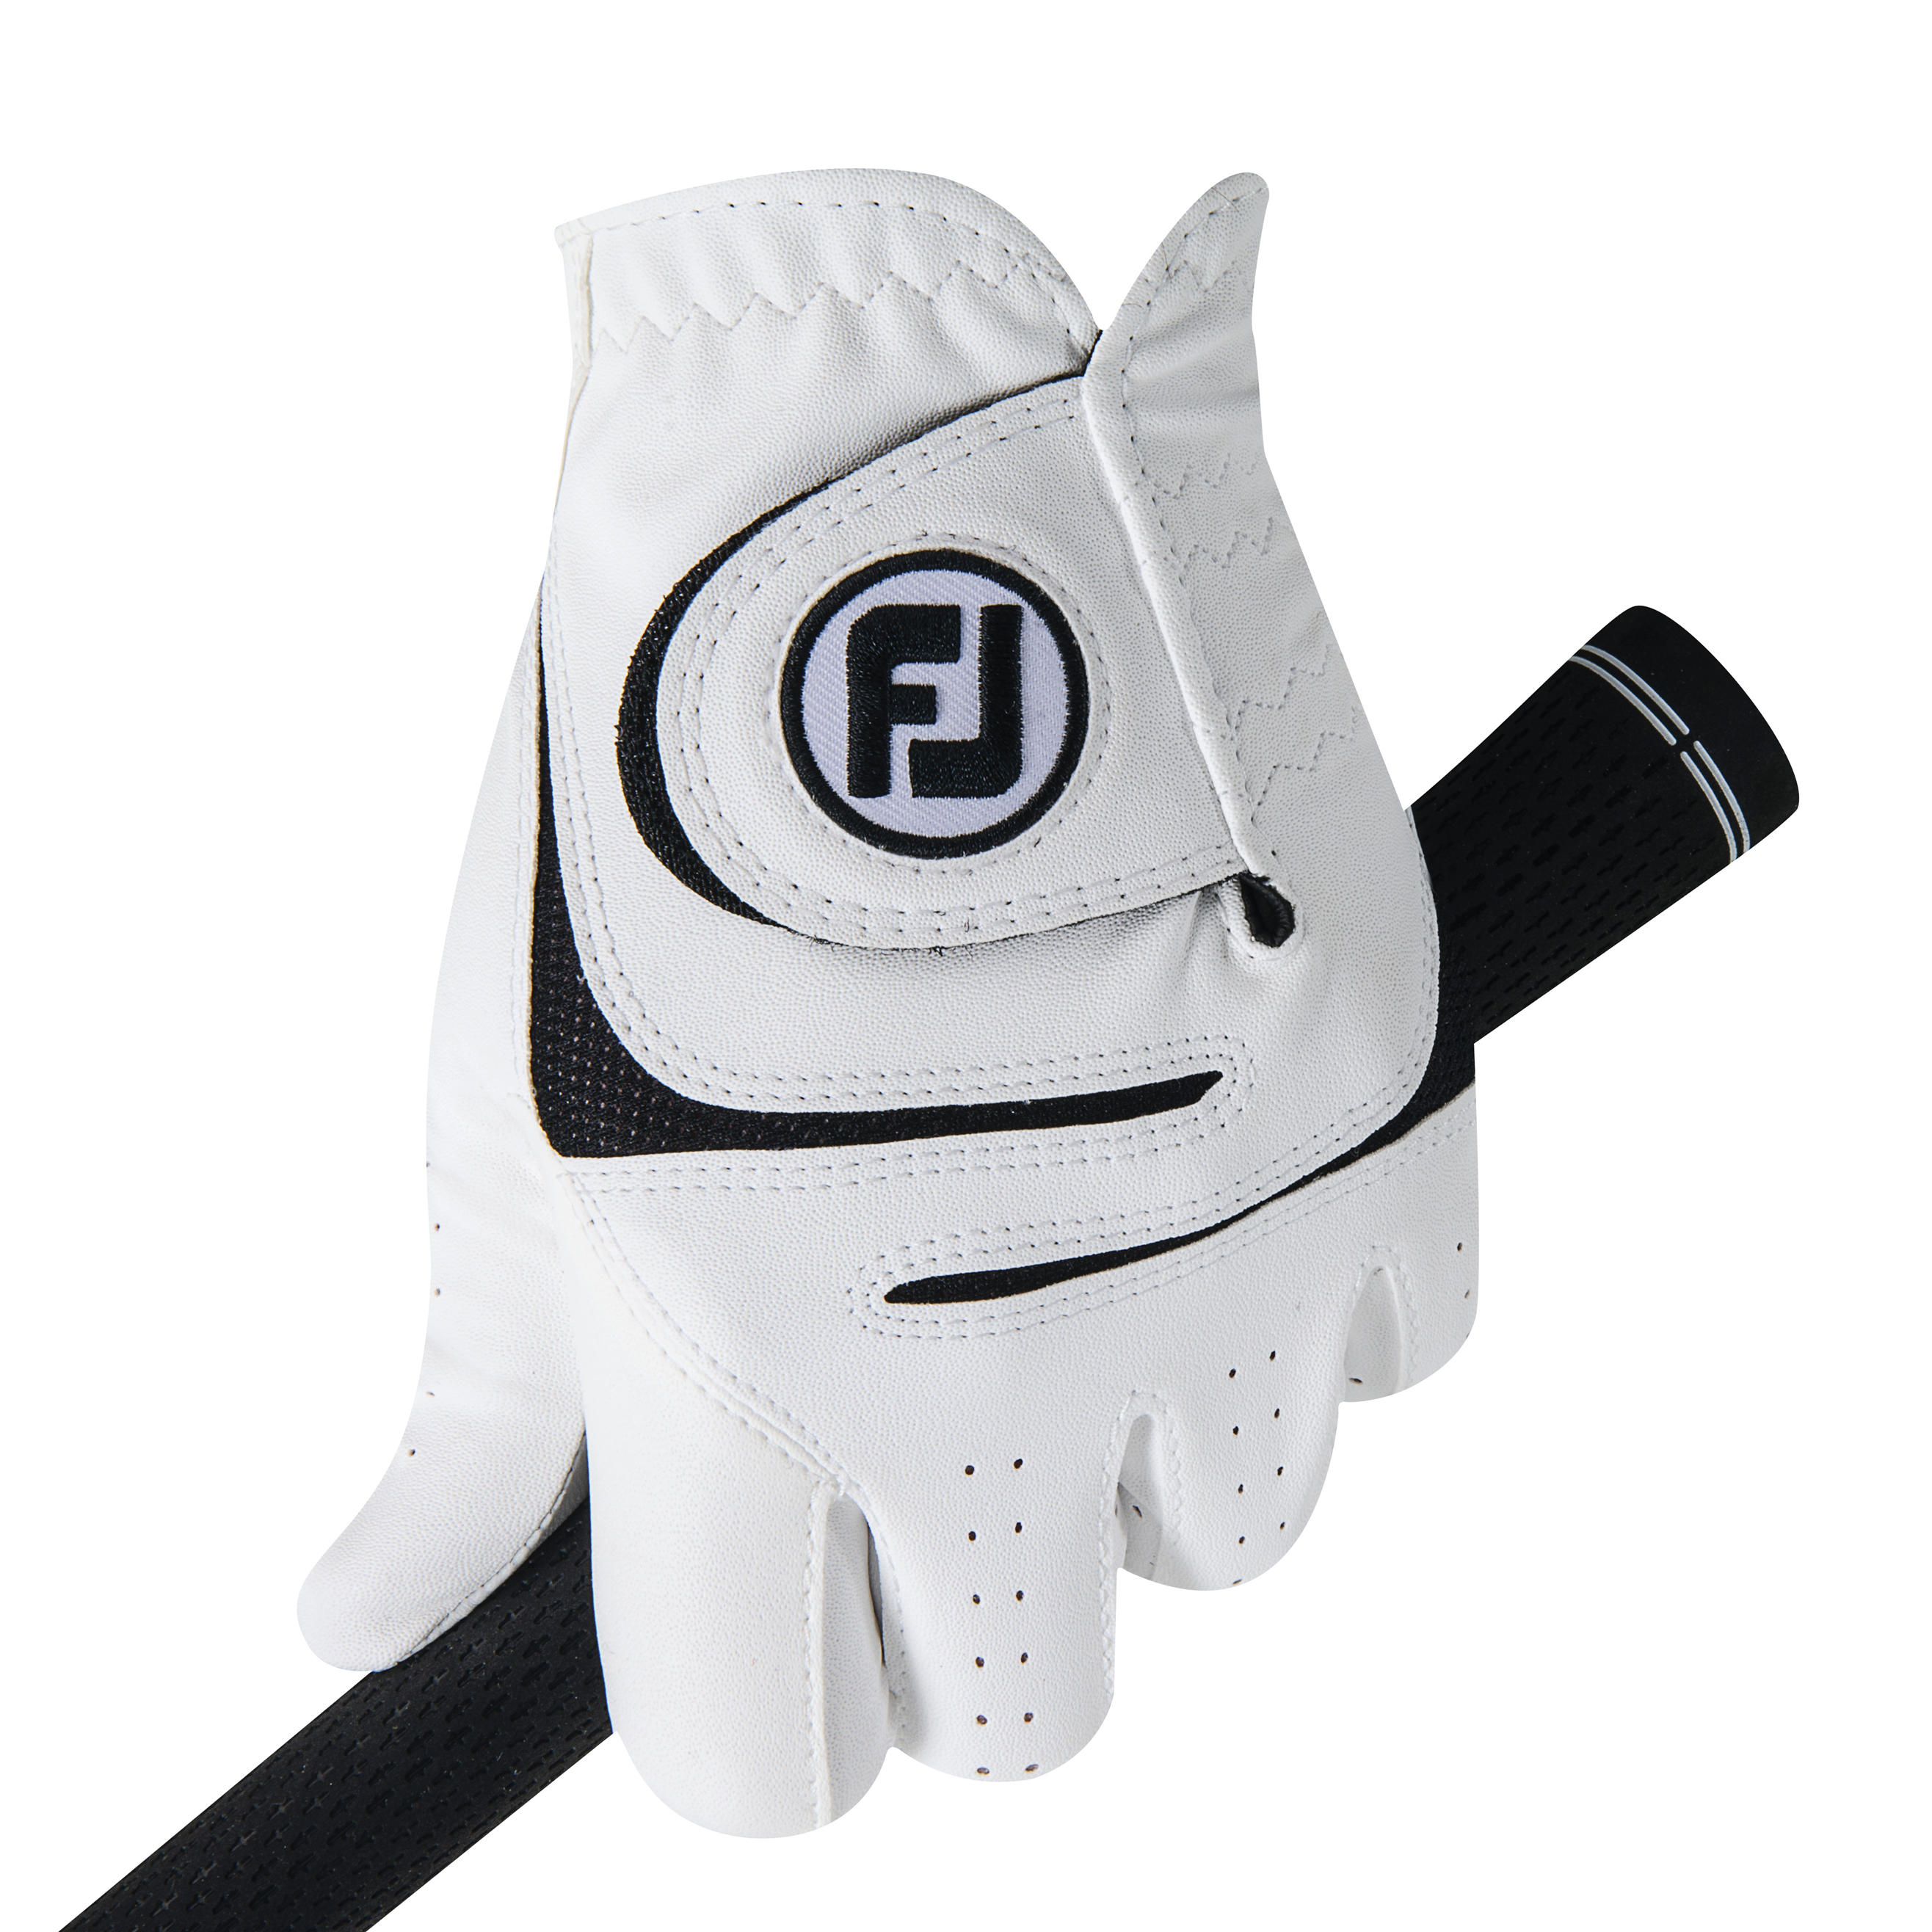 Footjoy Herengolfhandschoen weathersof 2018 wit